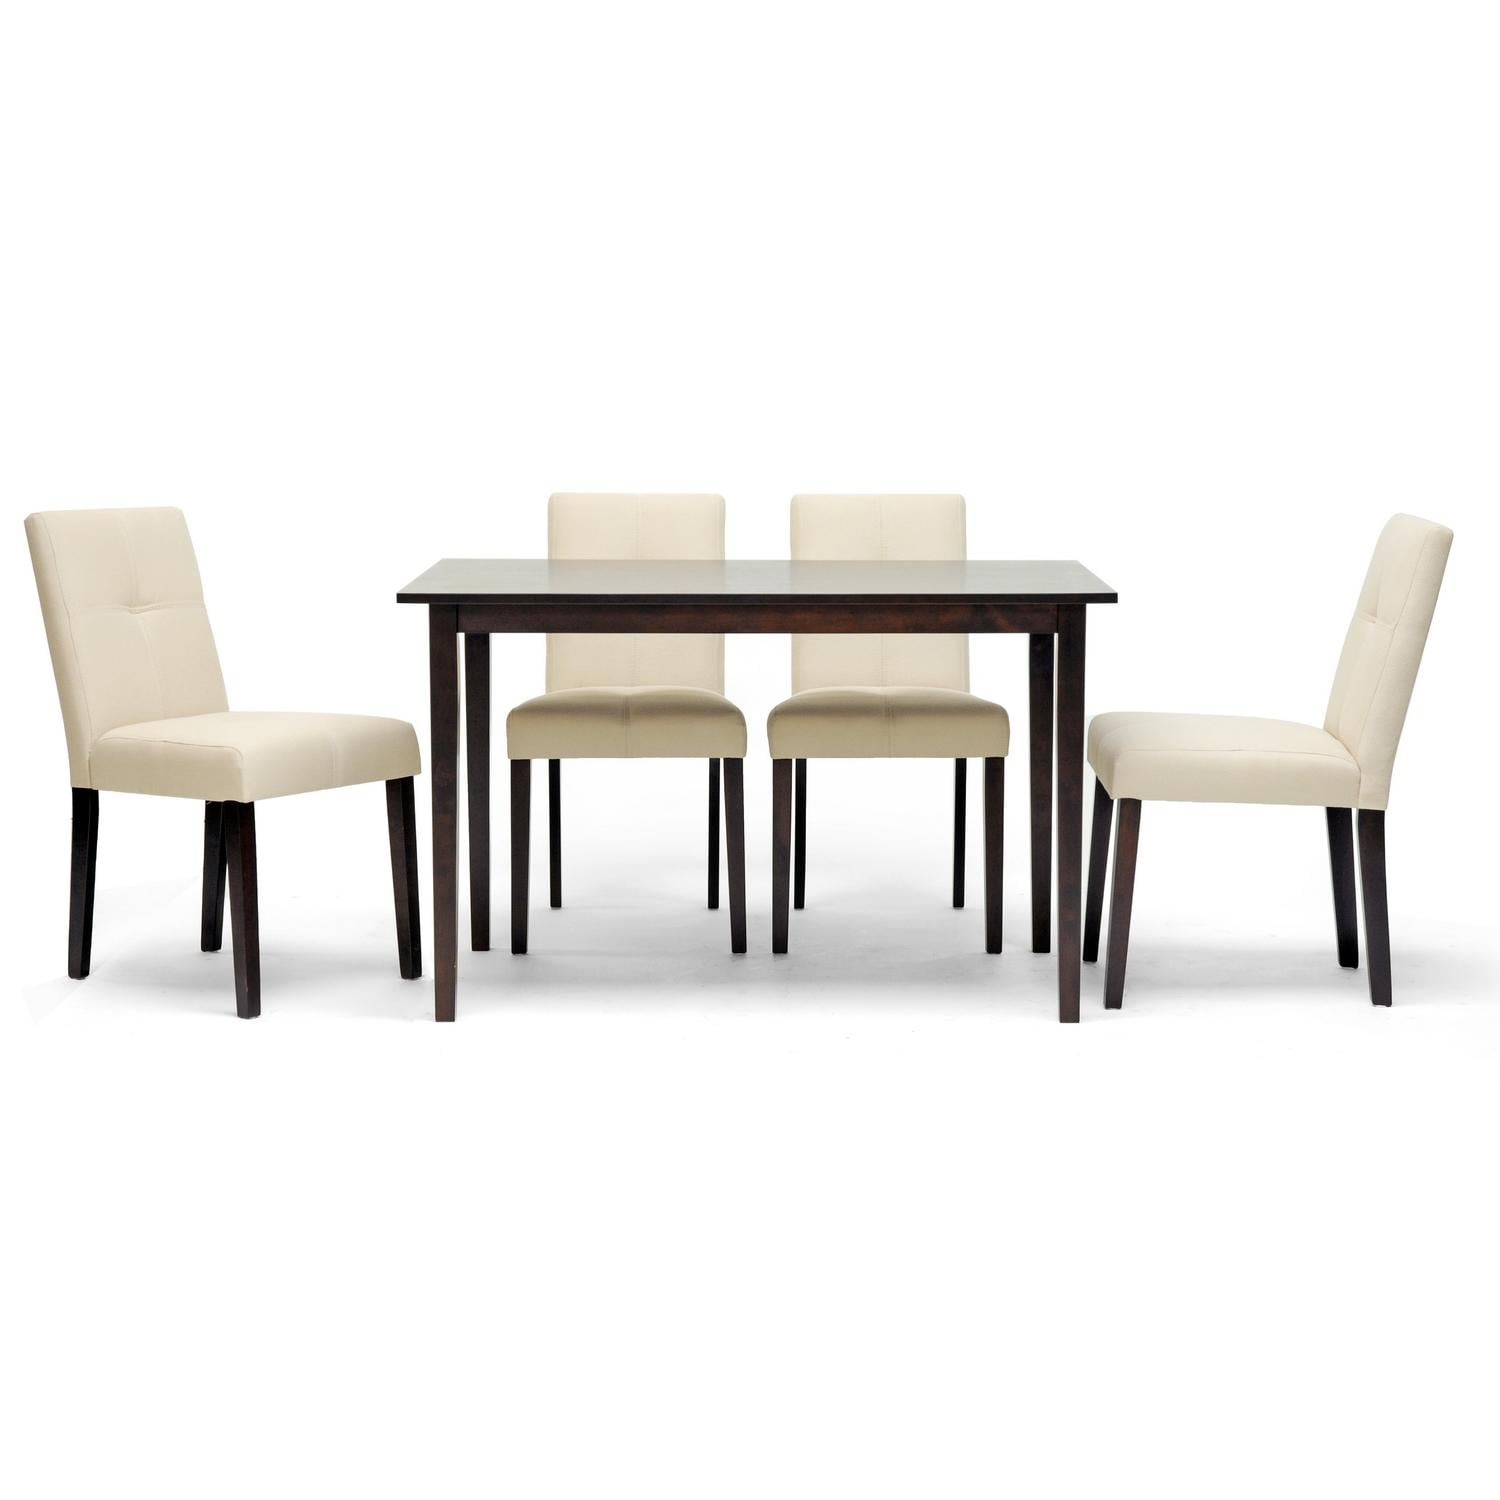 overstock com dining room chairs wobbly office chair baxton studio elsa brown wood 5 piece modern set